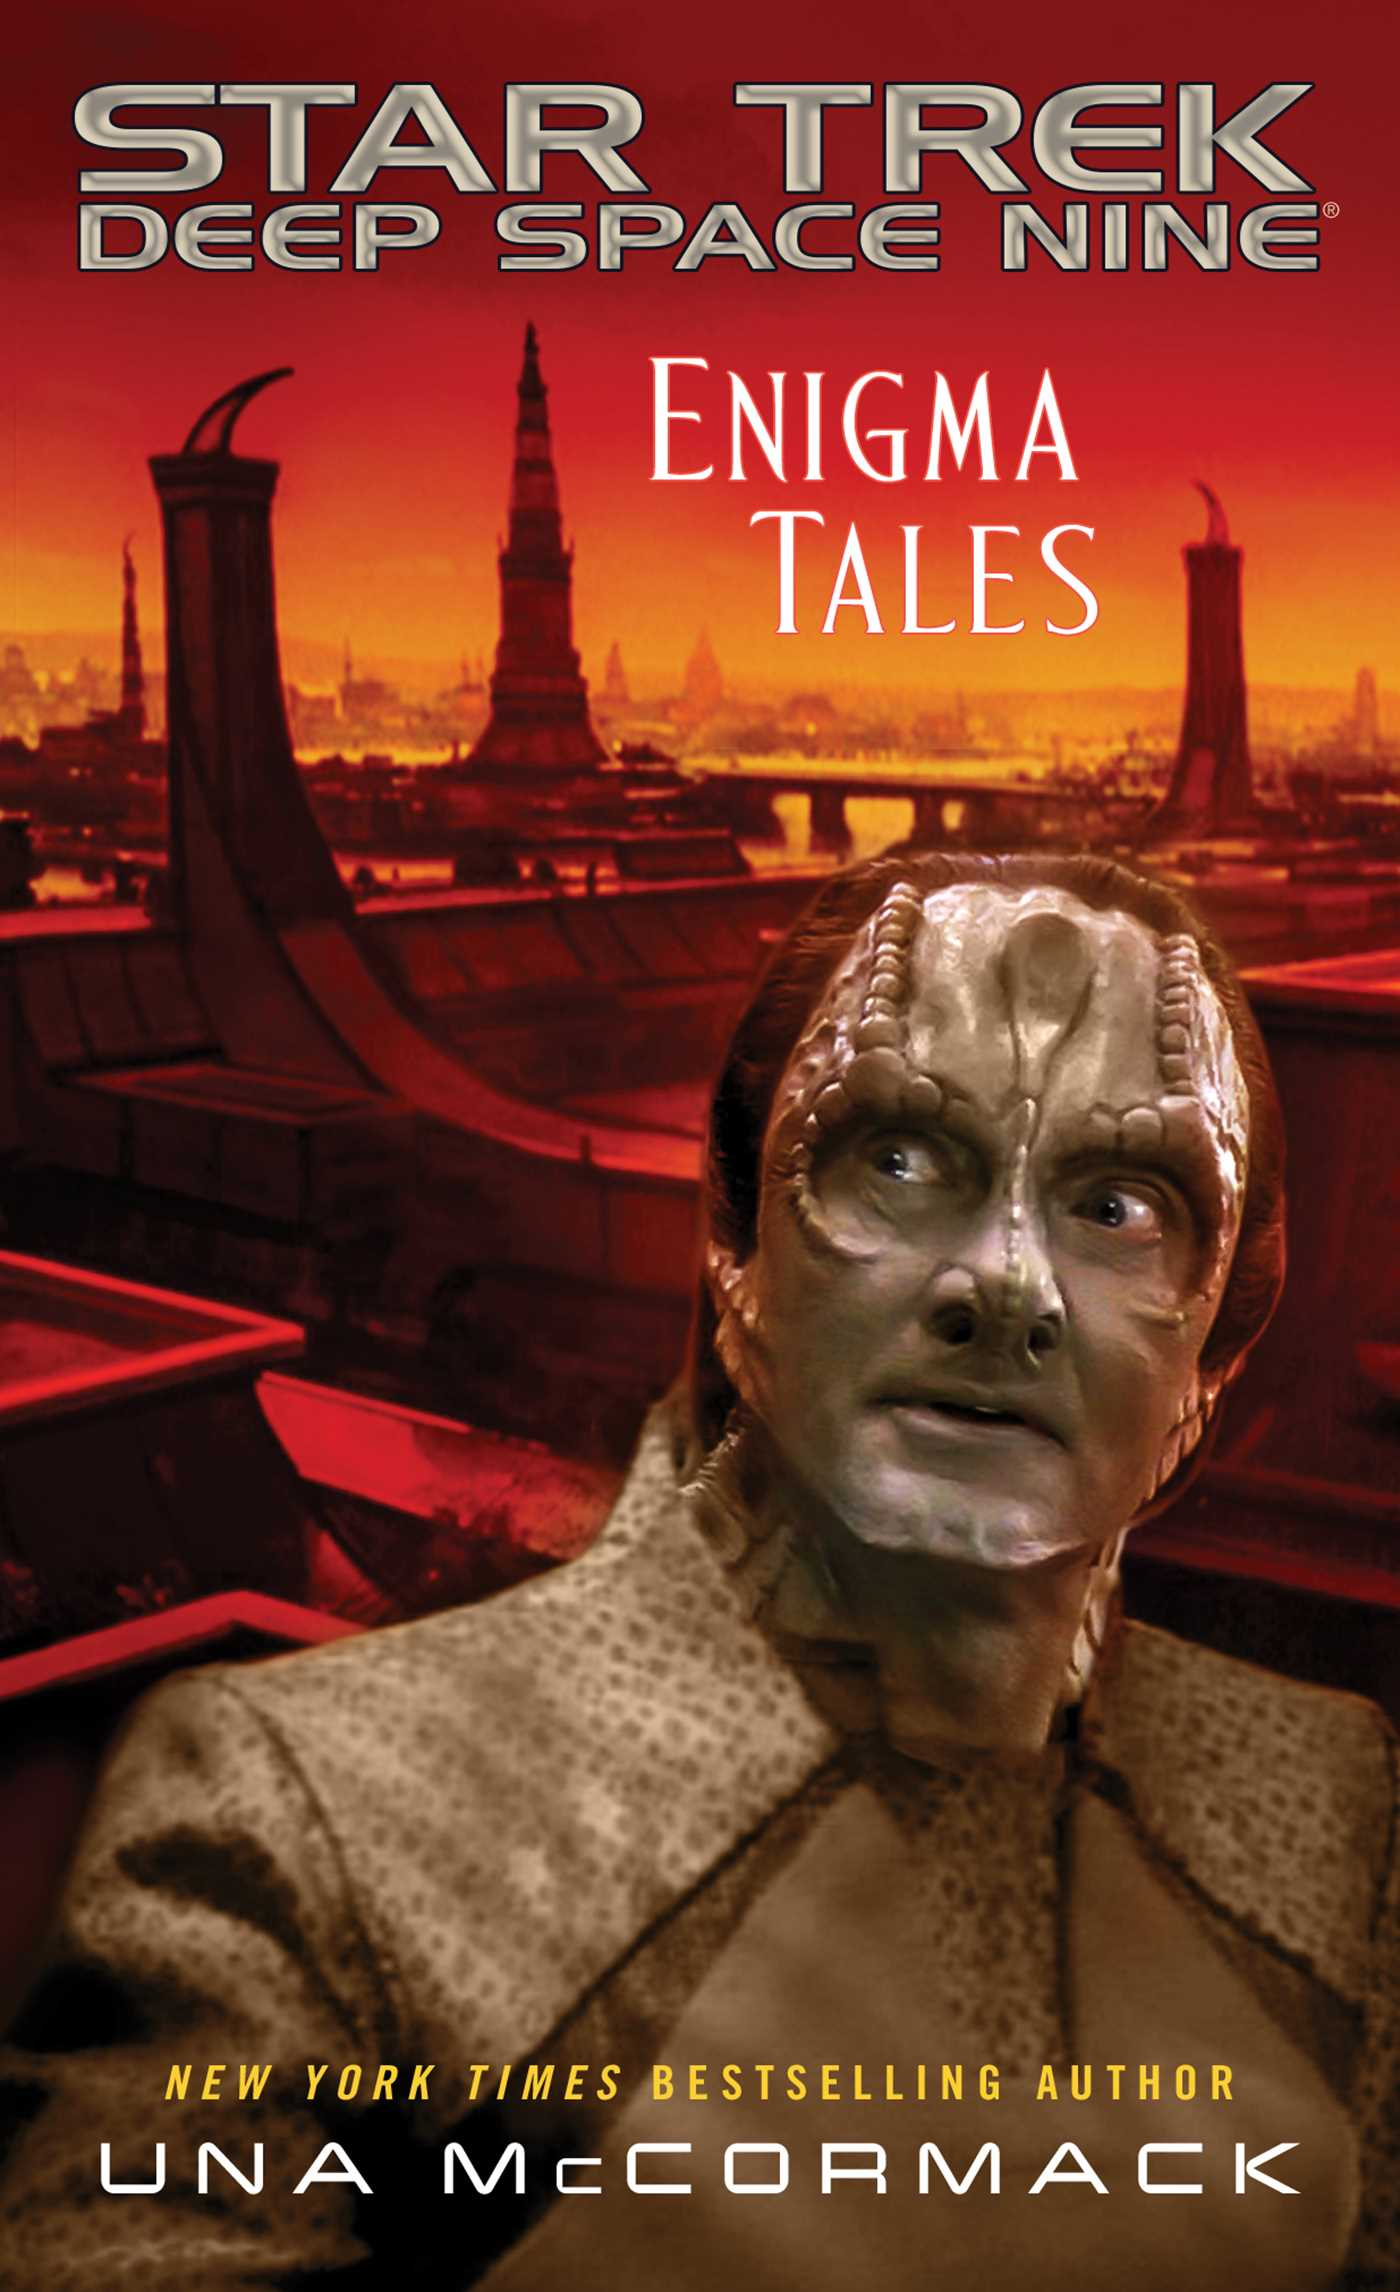 Enigma tales 9781501152597 hr